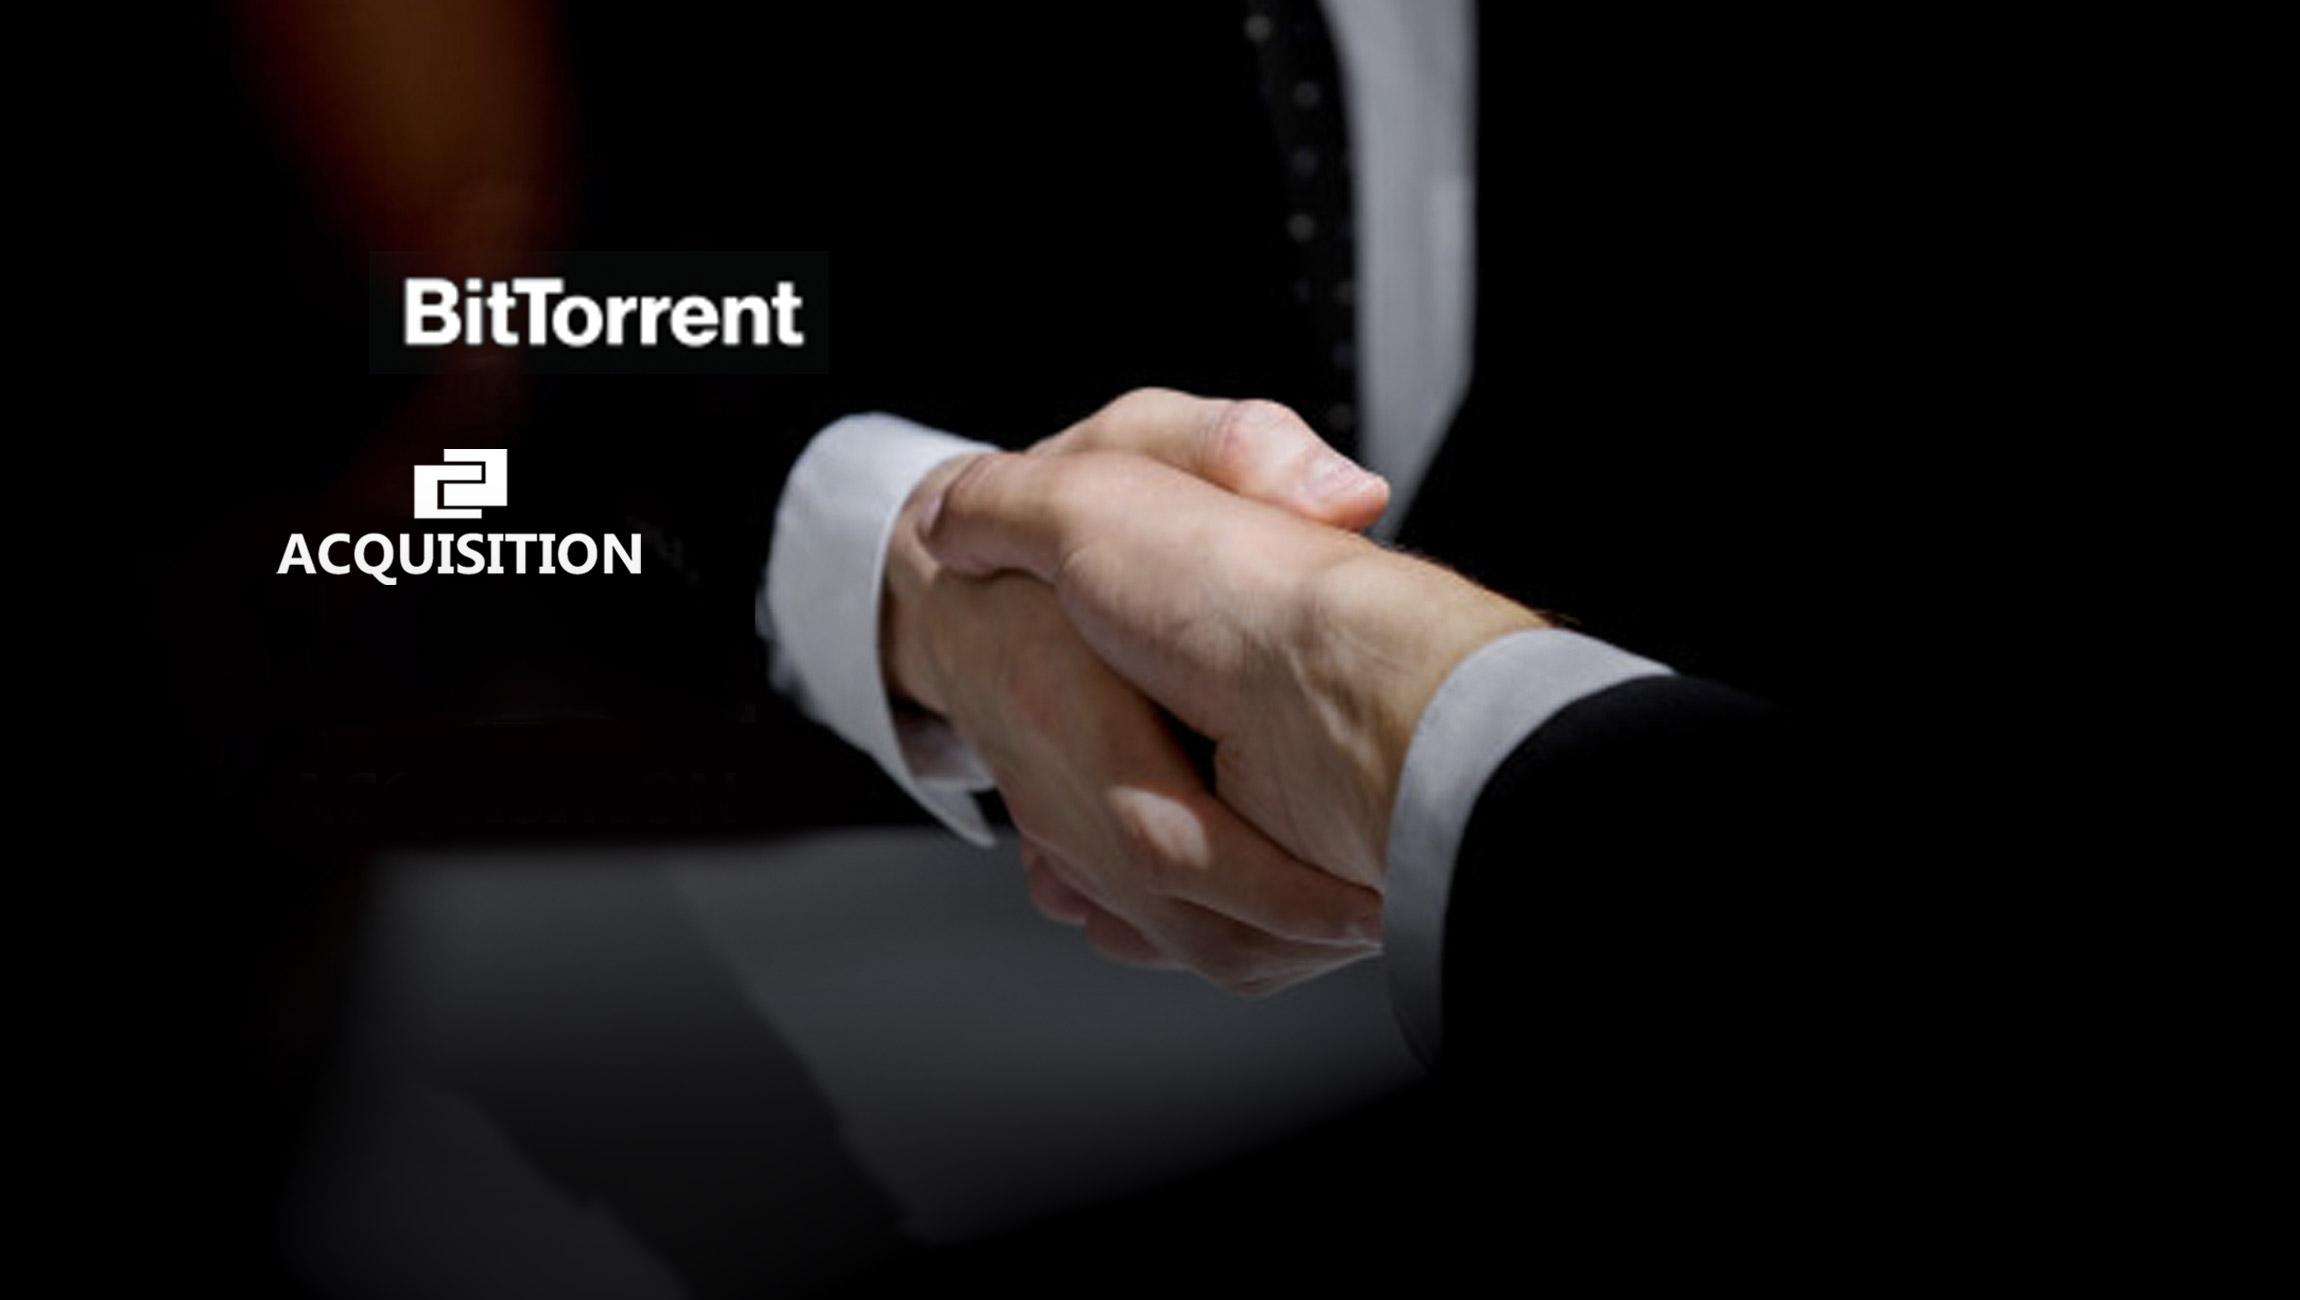 BitTorrent Announces DLive Acquisition and New BitTorrent X Ecosystem